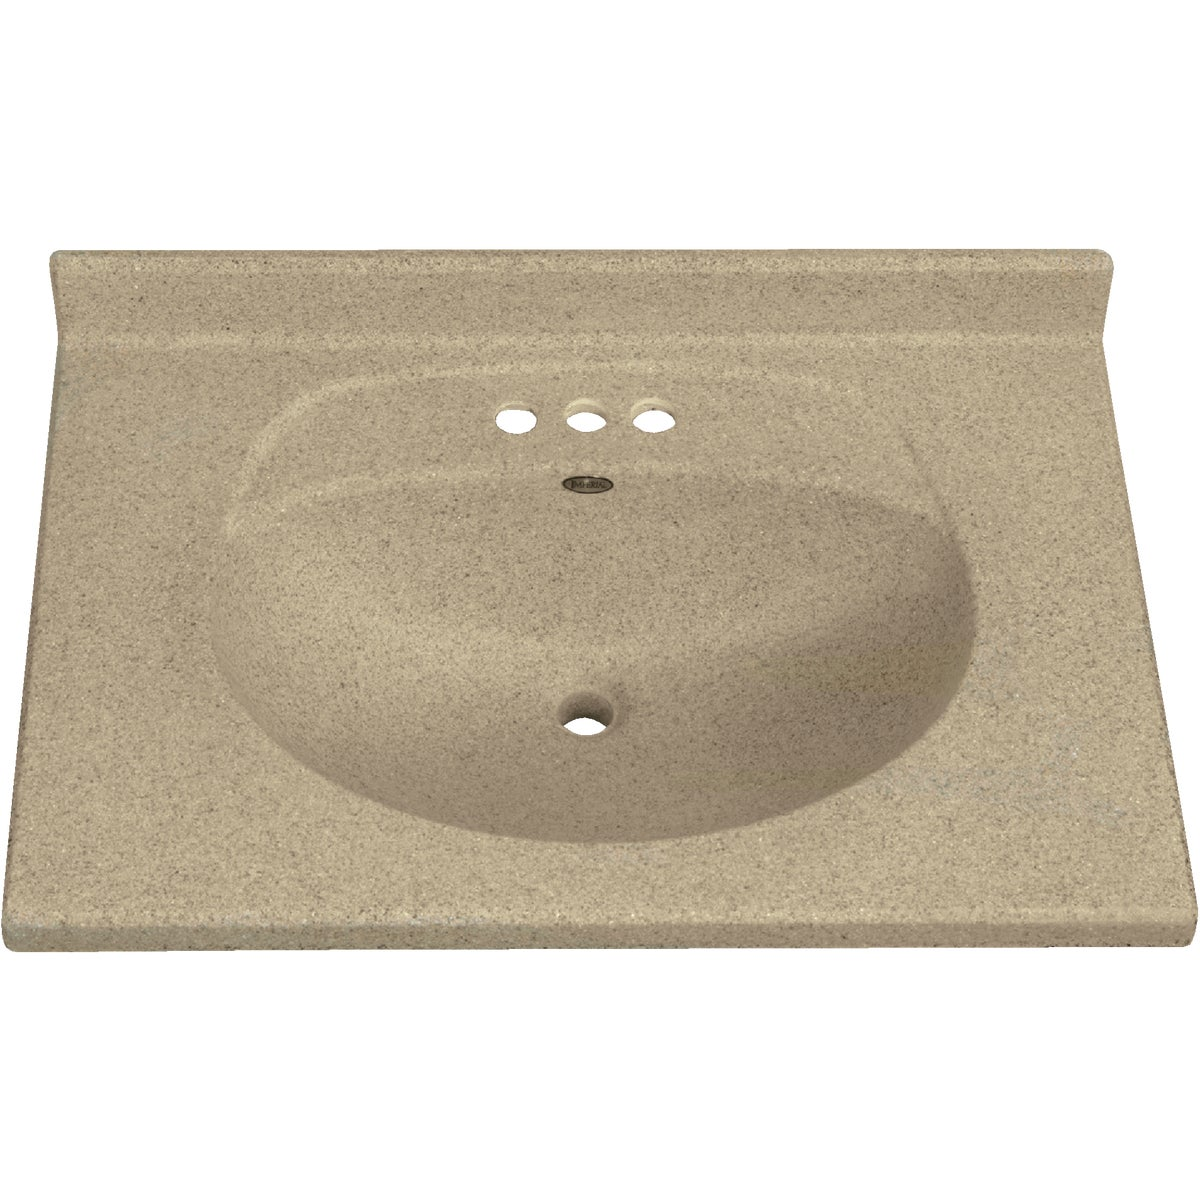 31X22 CAP OLY VANITY TOP - VB3122CAPSS by Imperial Marble Corp